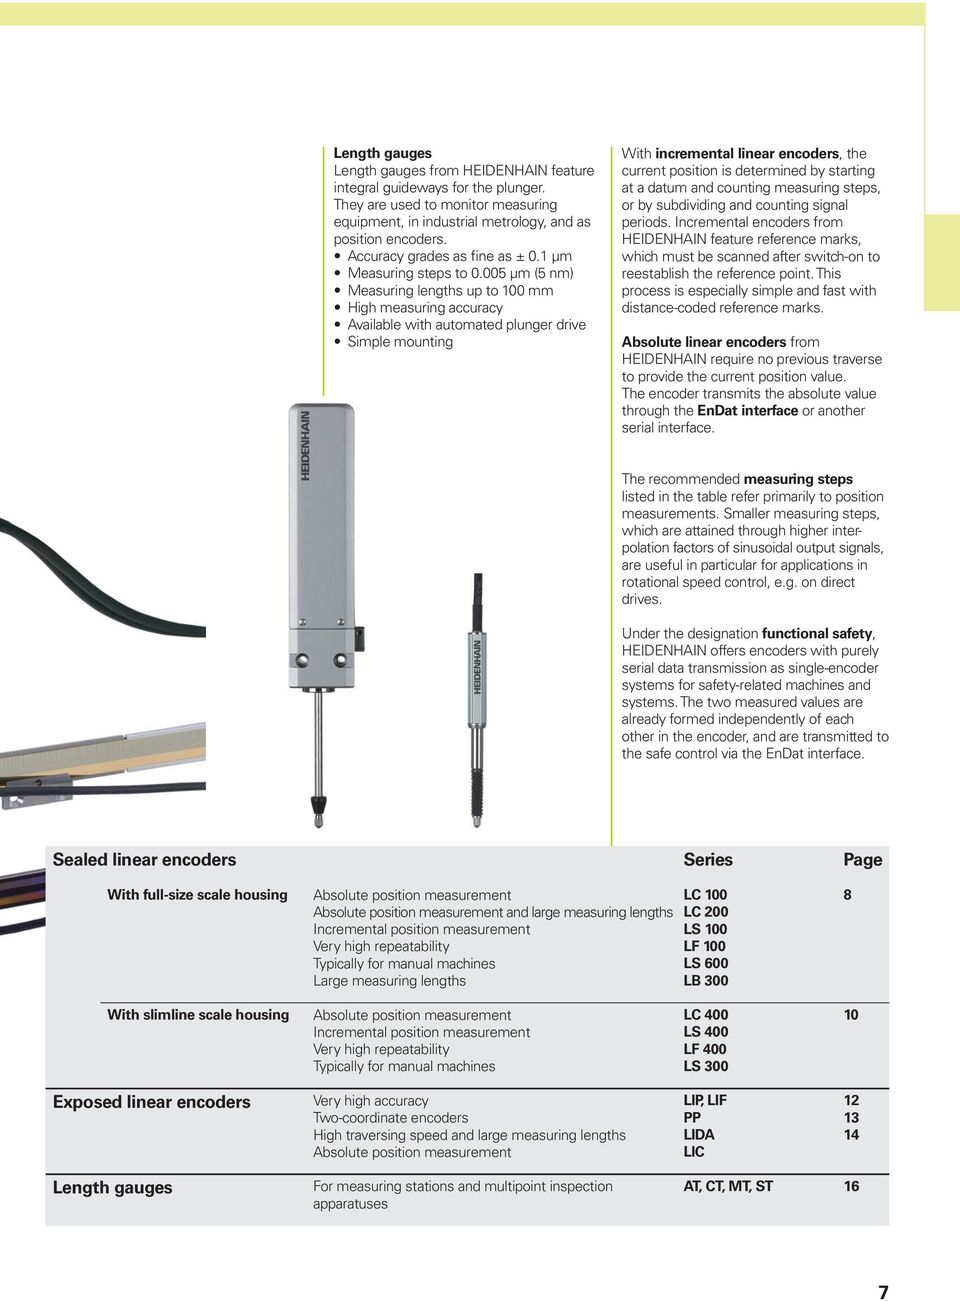 005 µm (5 nm) Measuring lengths up to 100 mm High measuring accuracy Available with automated plunger drive Simple mounting With incremental linear encoders, the current position is determined by